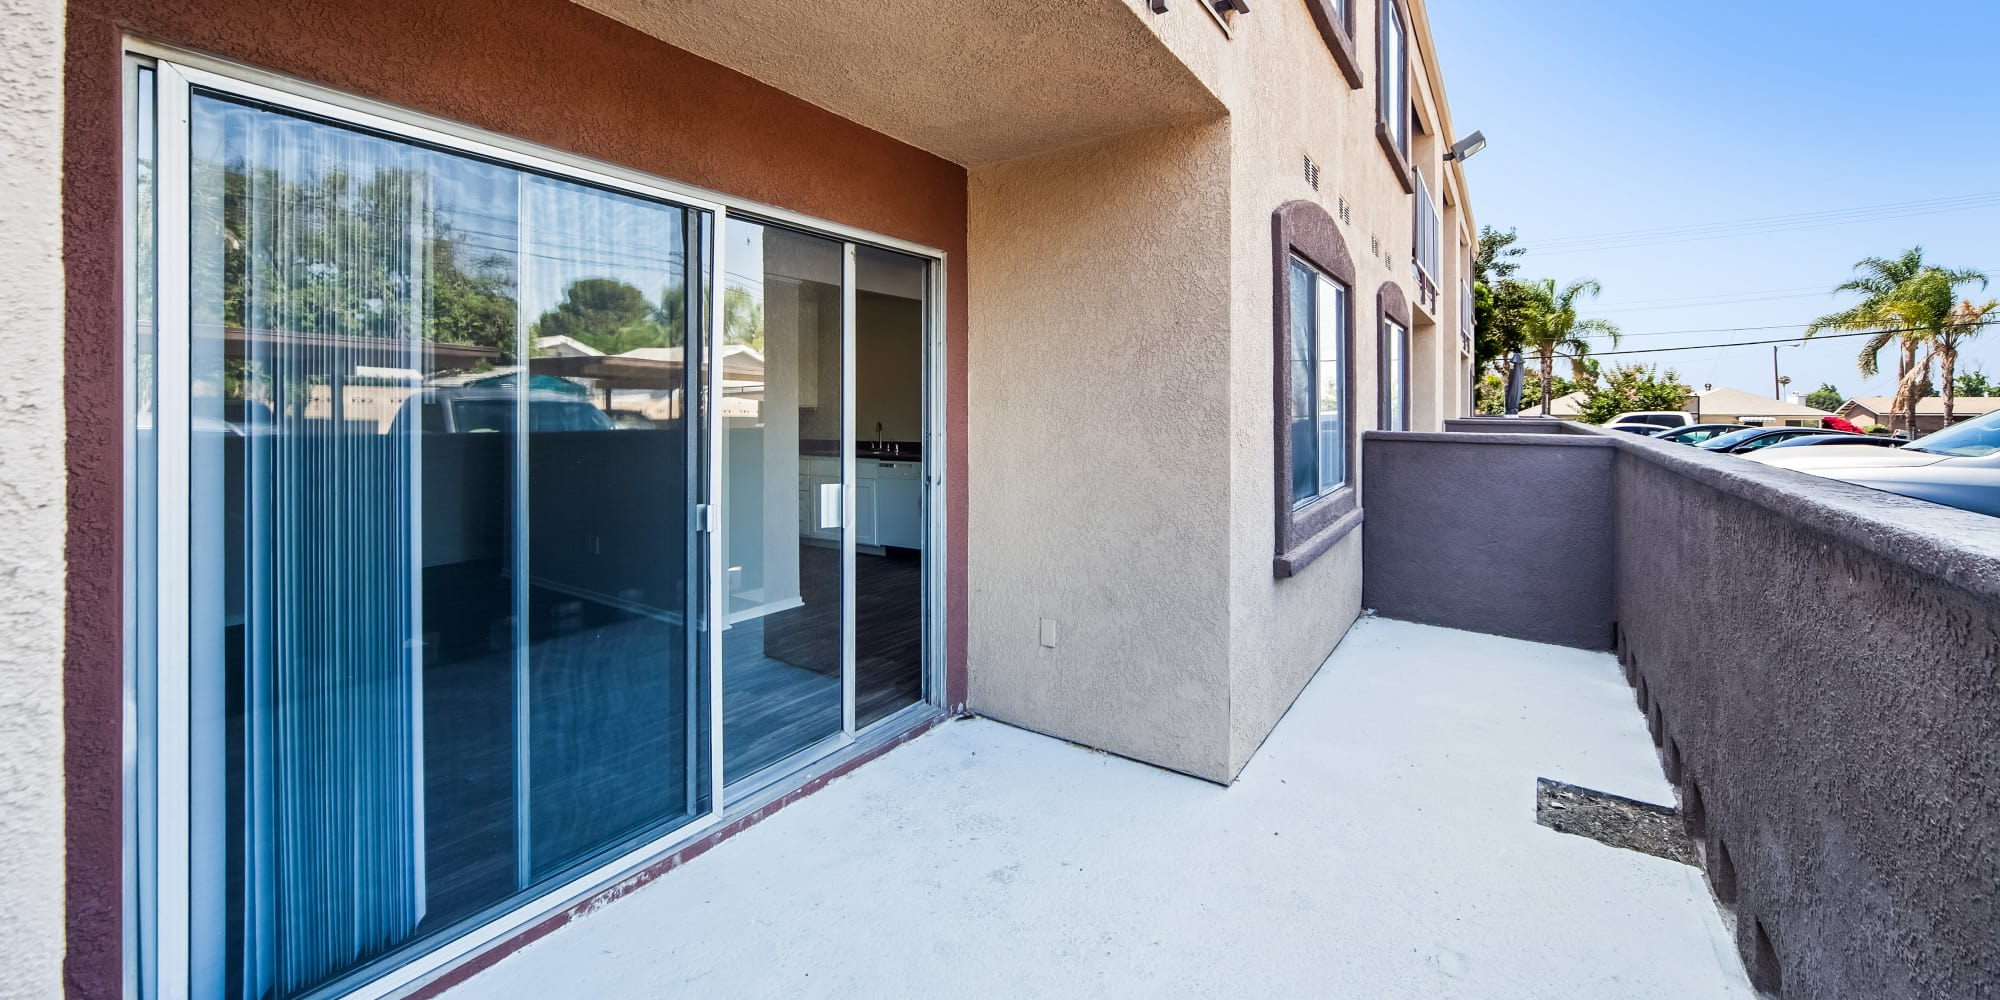 Spacious patio for entertaining friends at West Fifth Apartments in Ontario, California